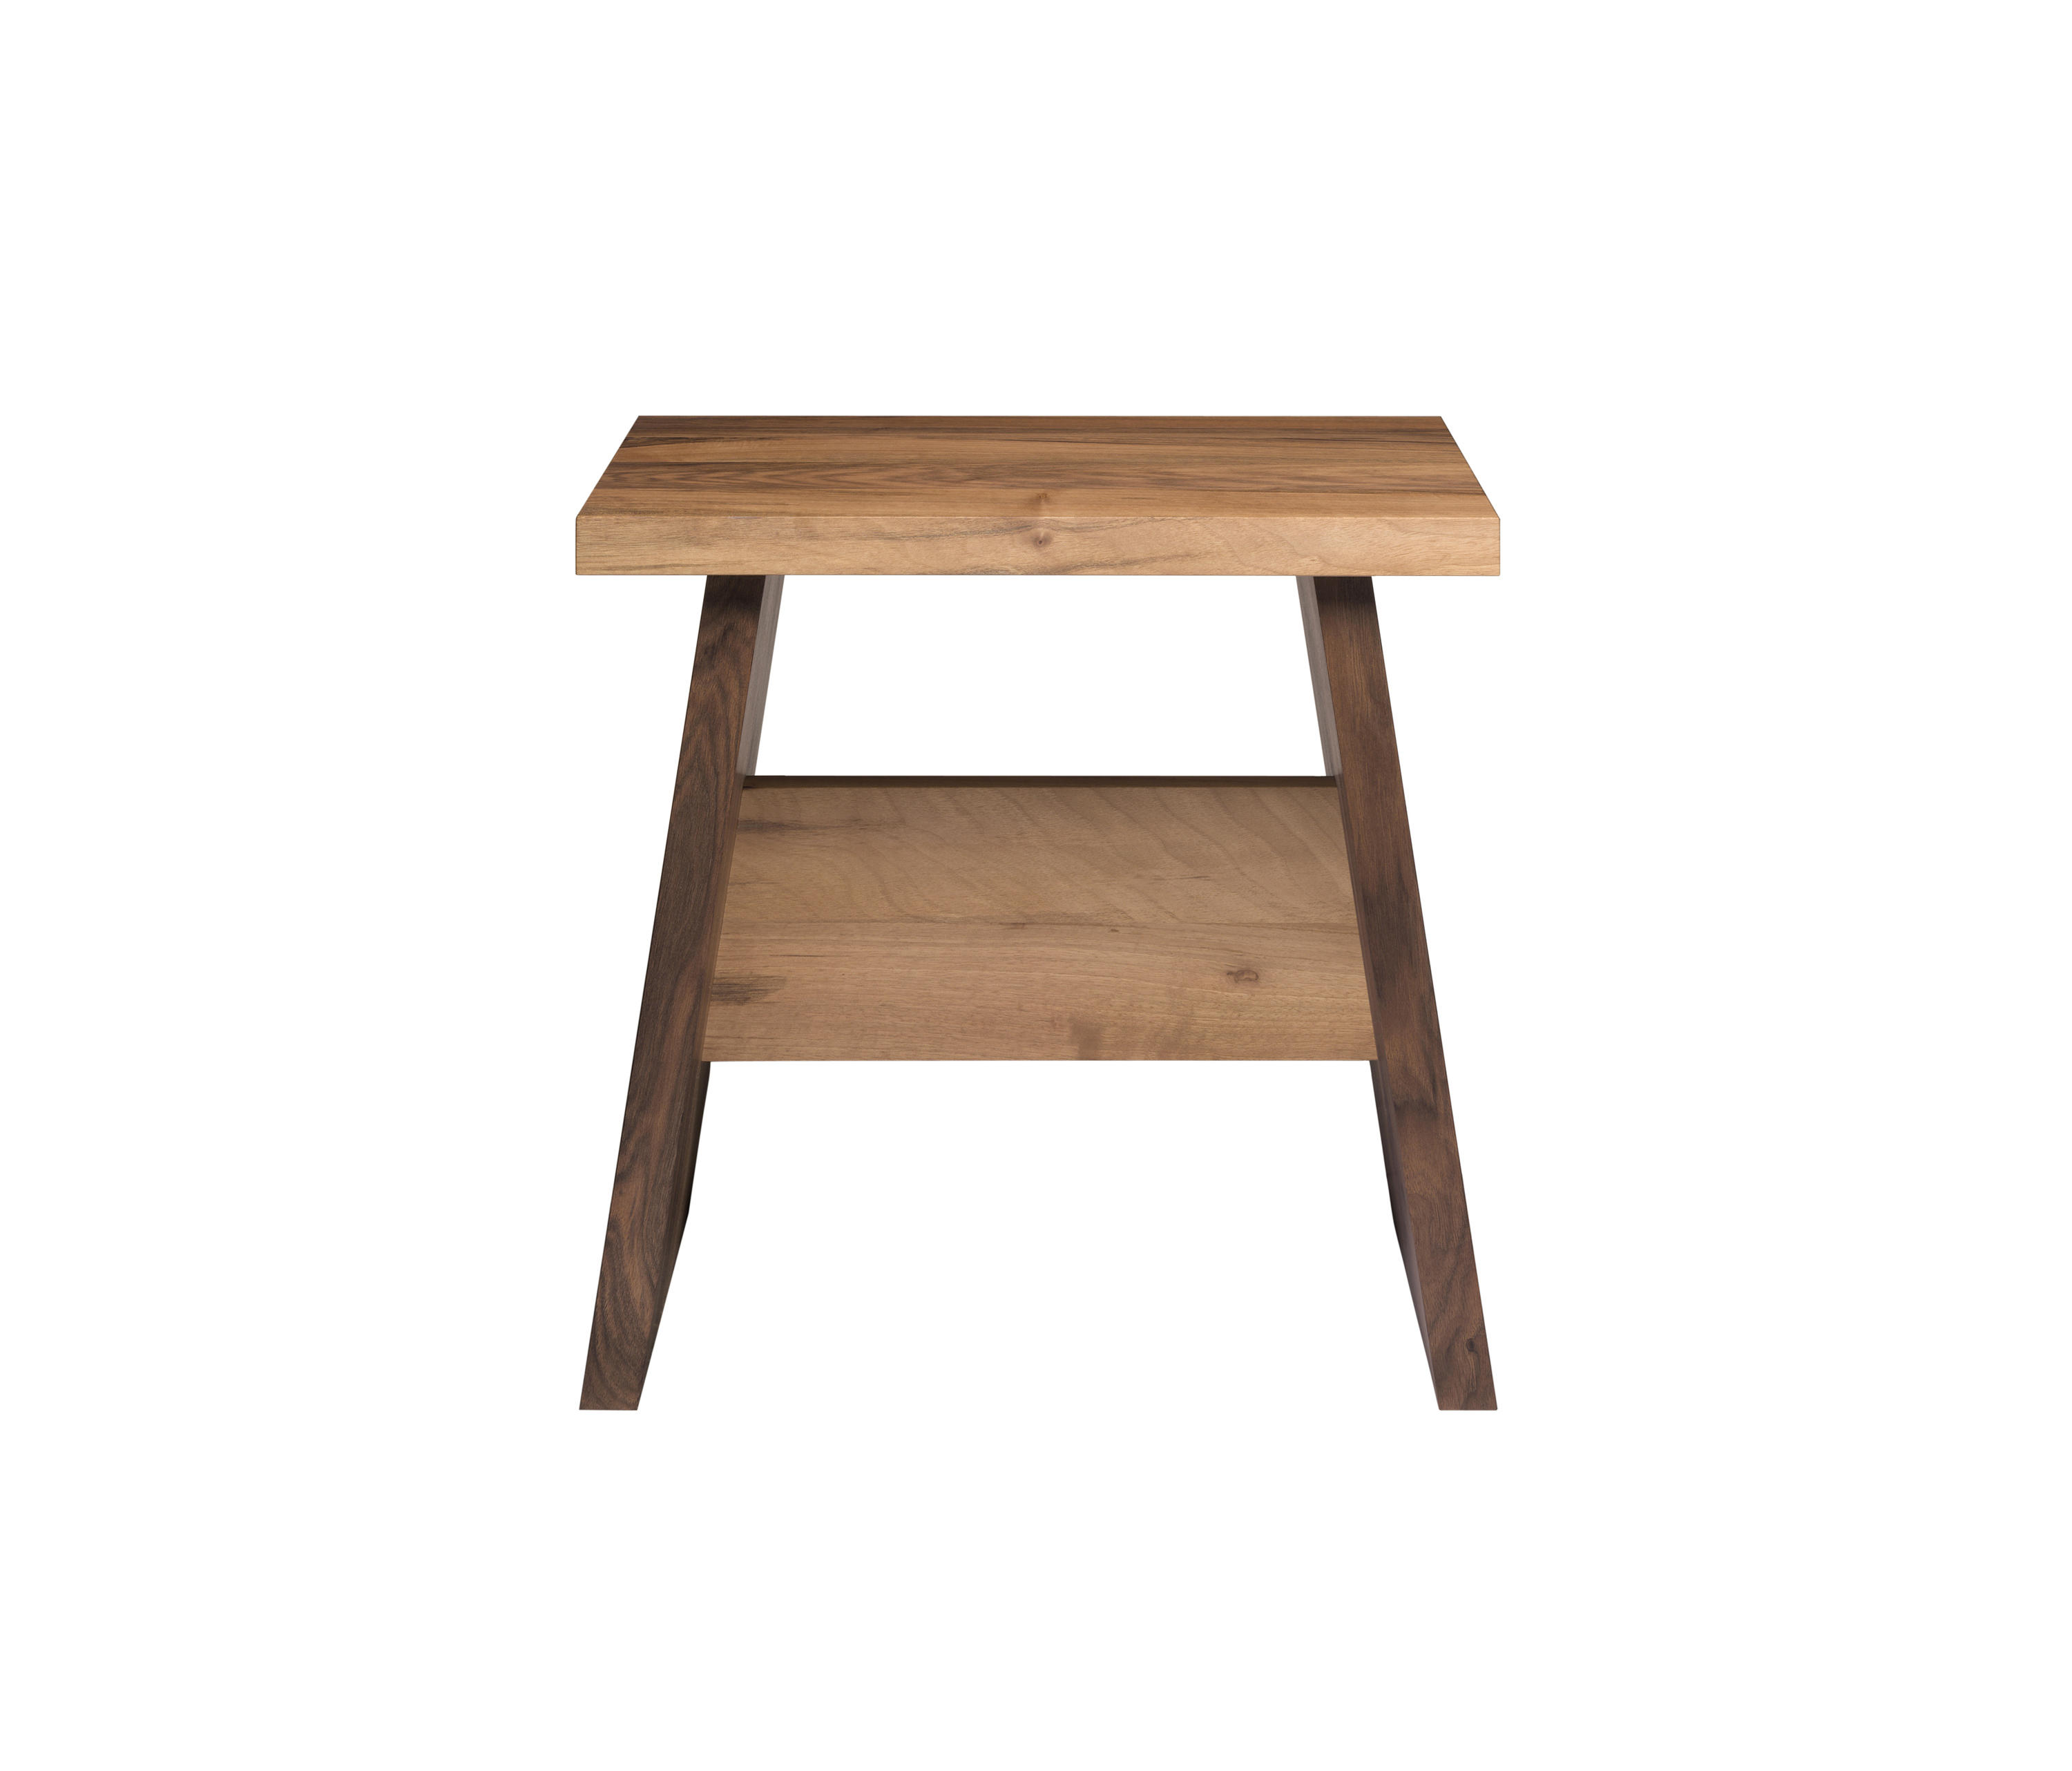 ROLL-IT STOOL / SIDE TABLE - Side tables from jankurtz | Architonic